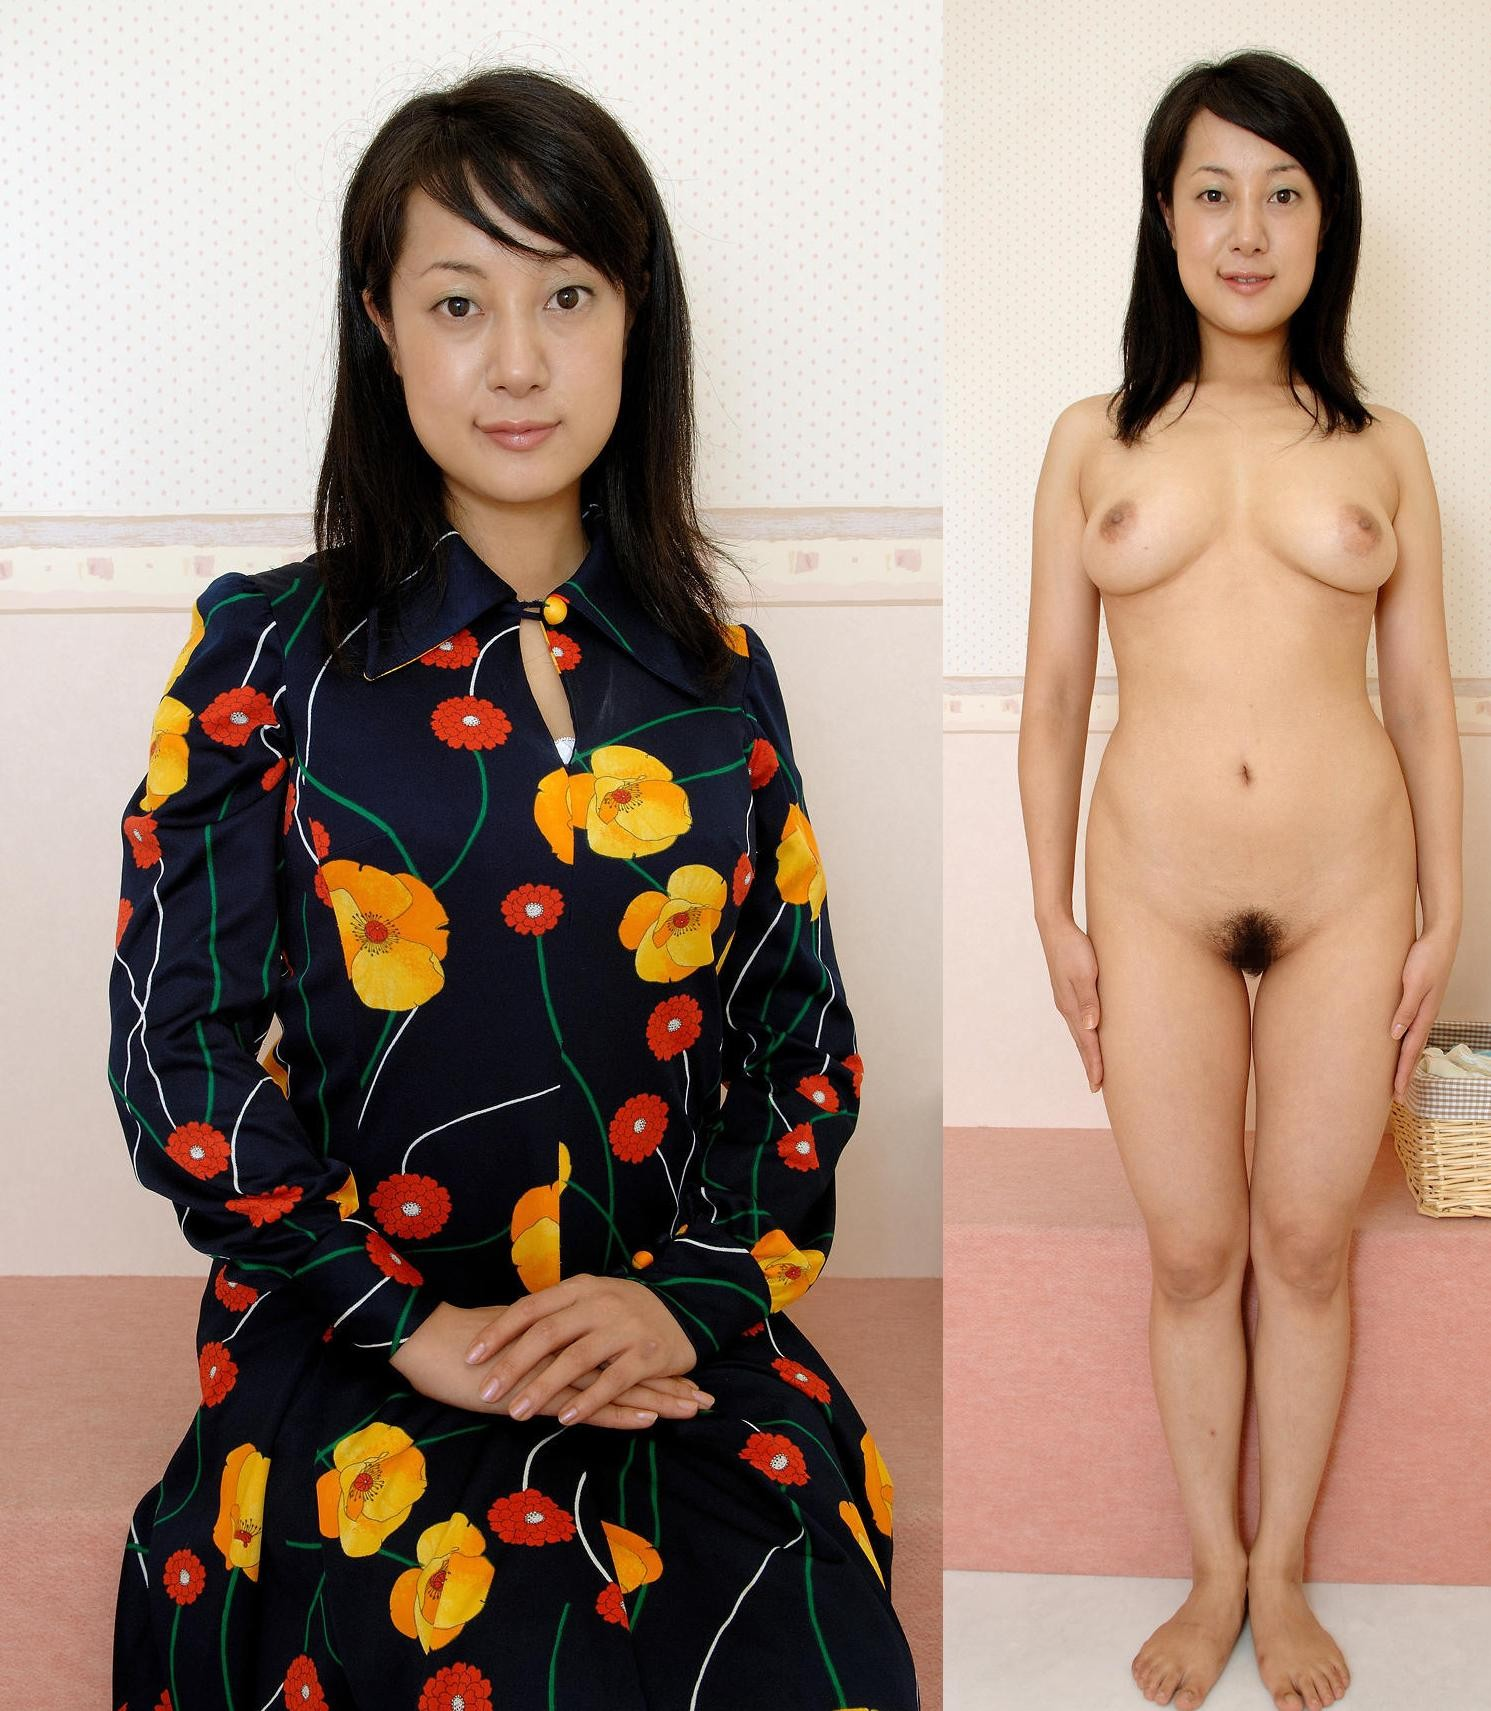 96997_asian_undressed_10_123_50lo.jpg